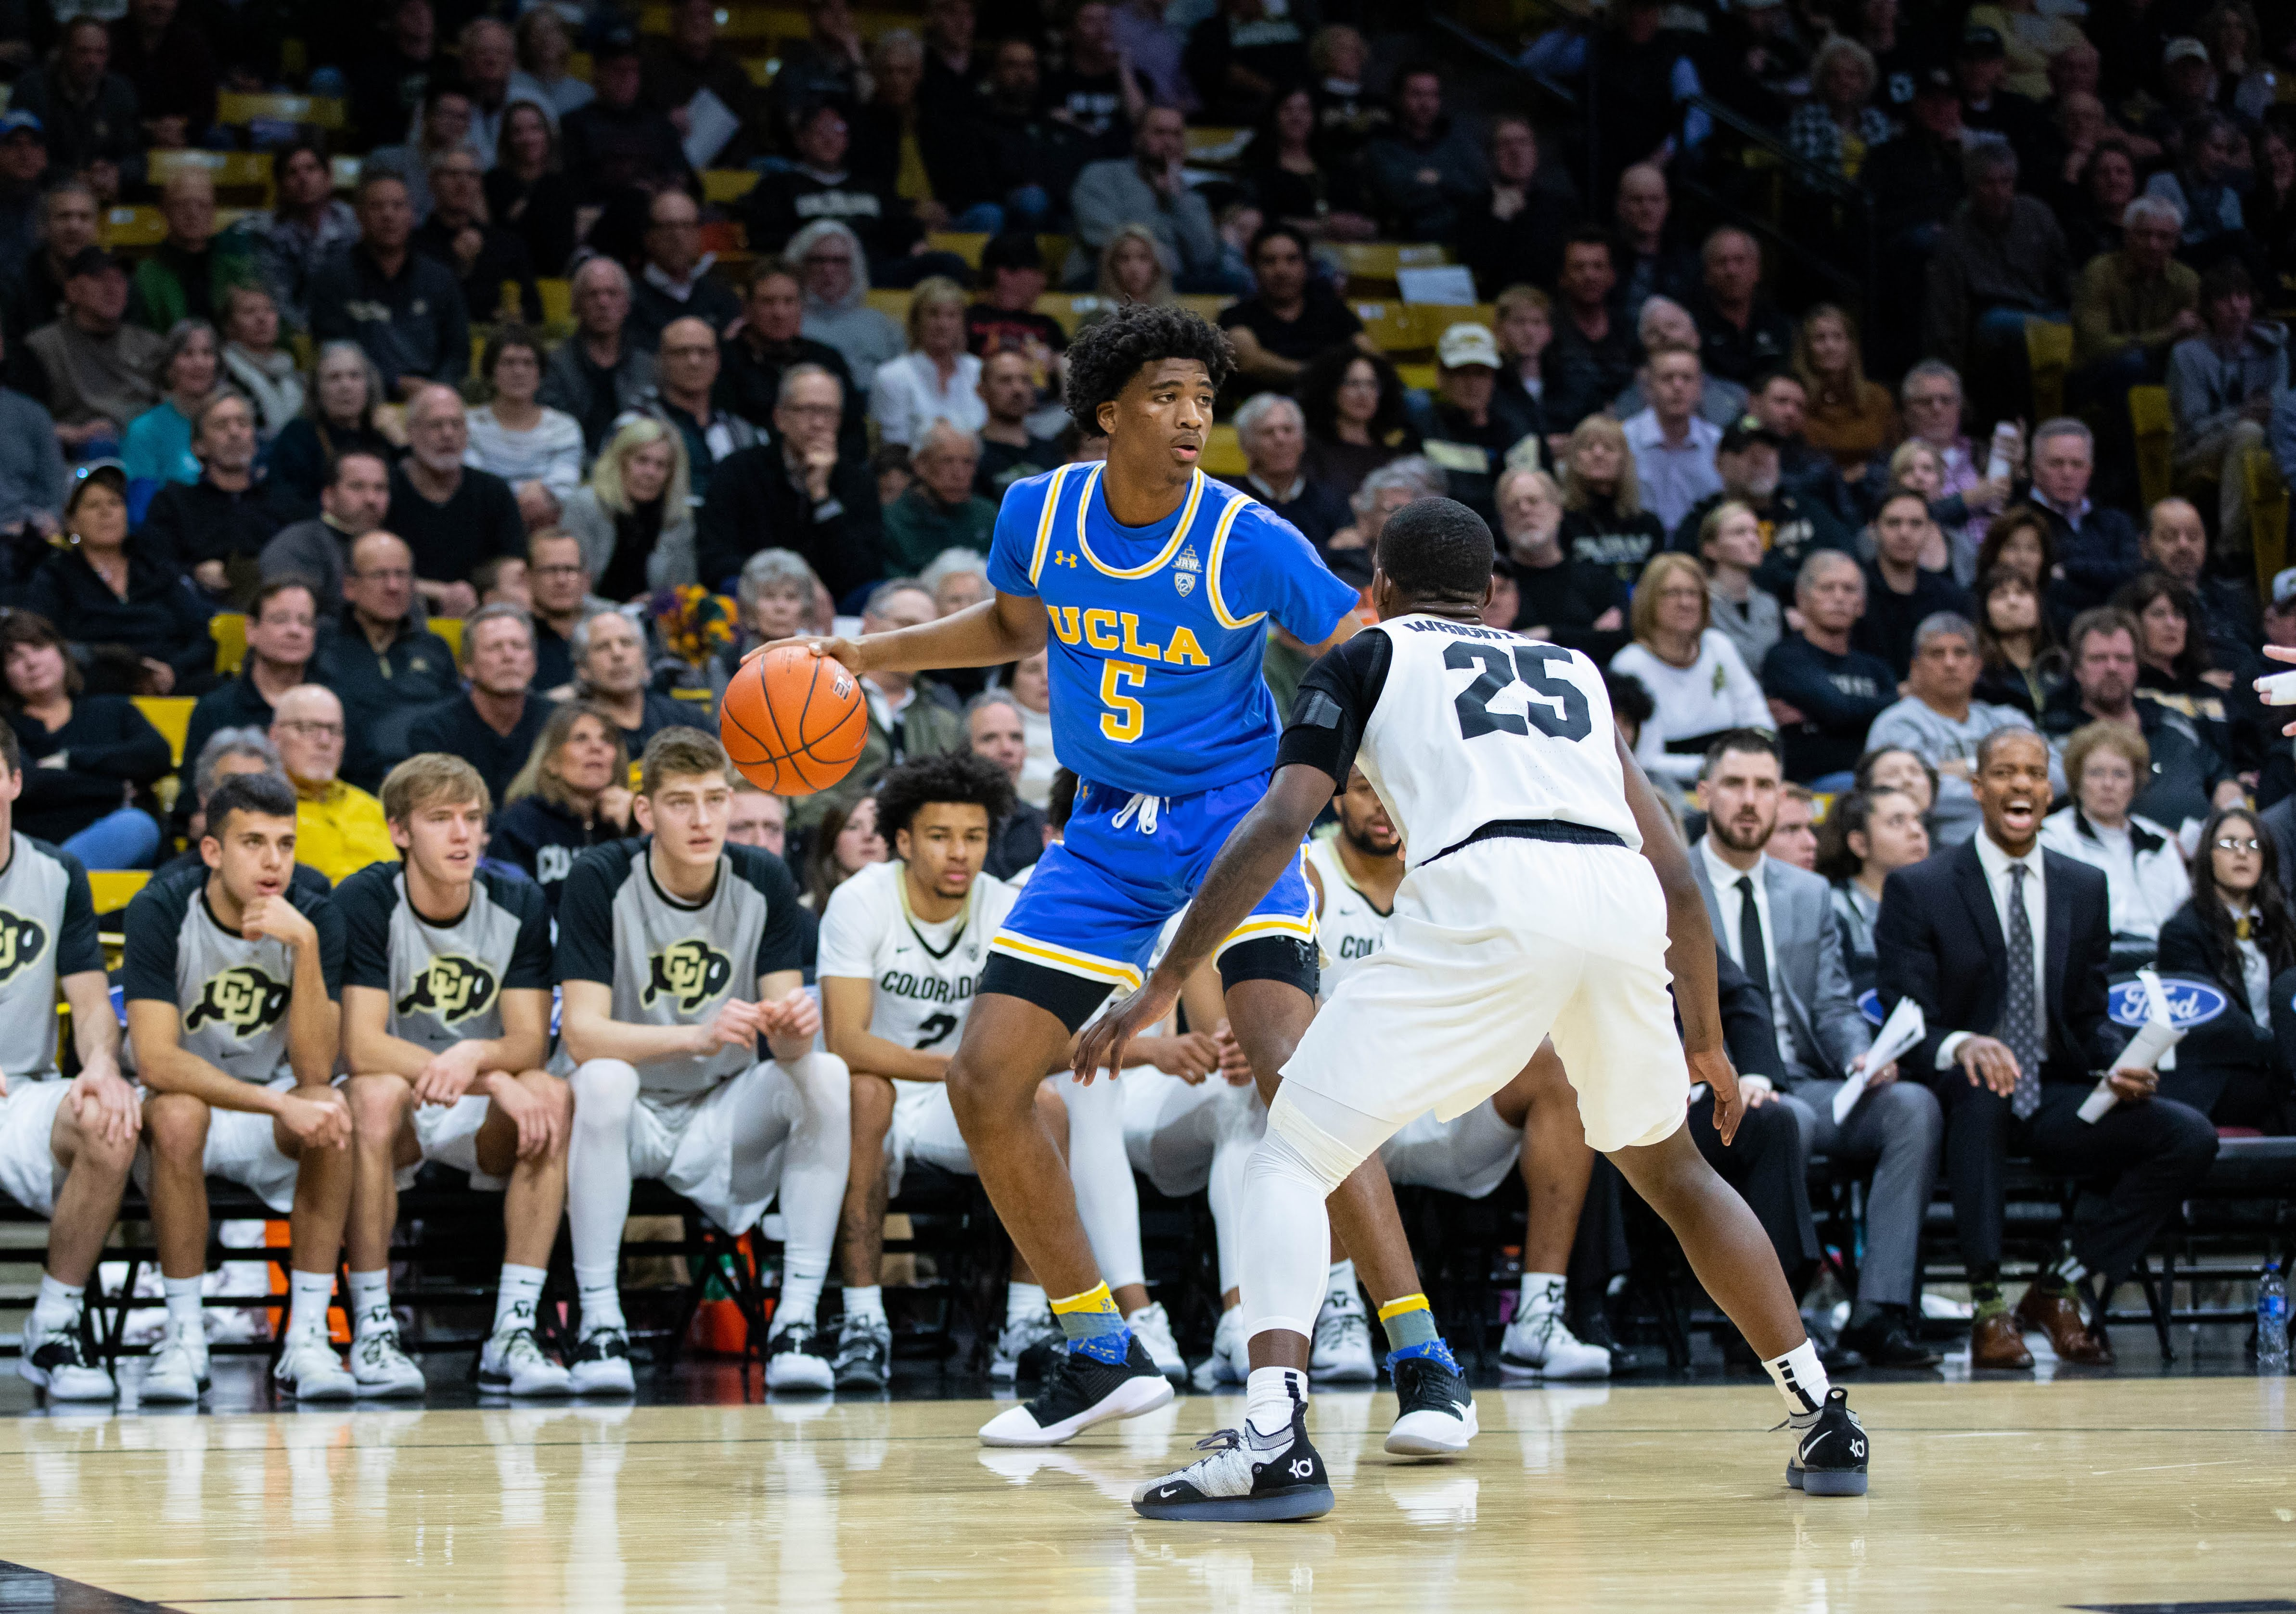 Bey and Gatling go off in Buffs' 93-68 victory over UCLA